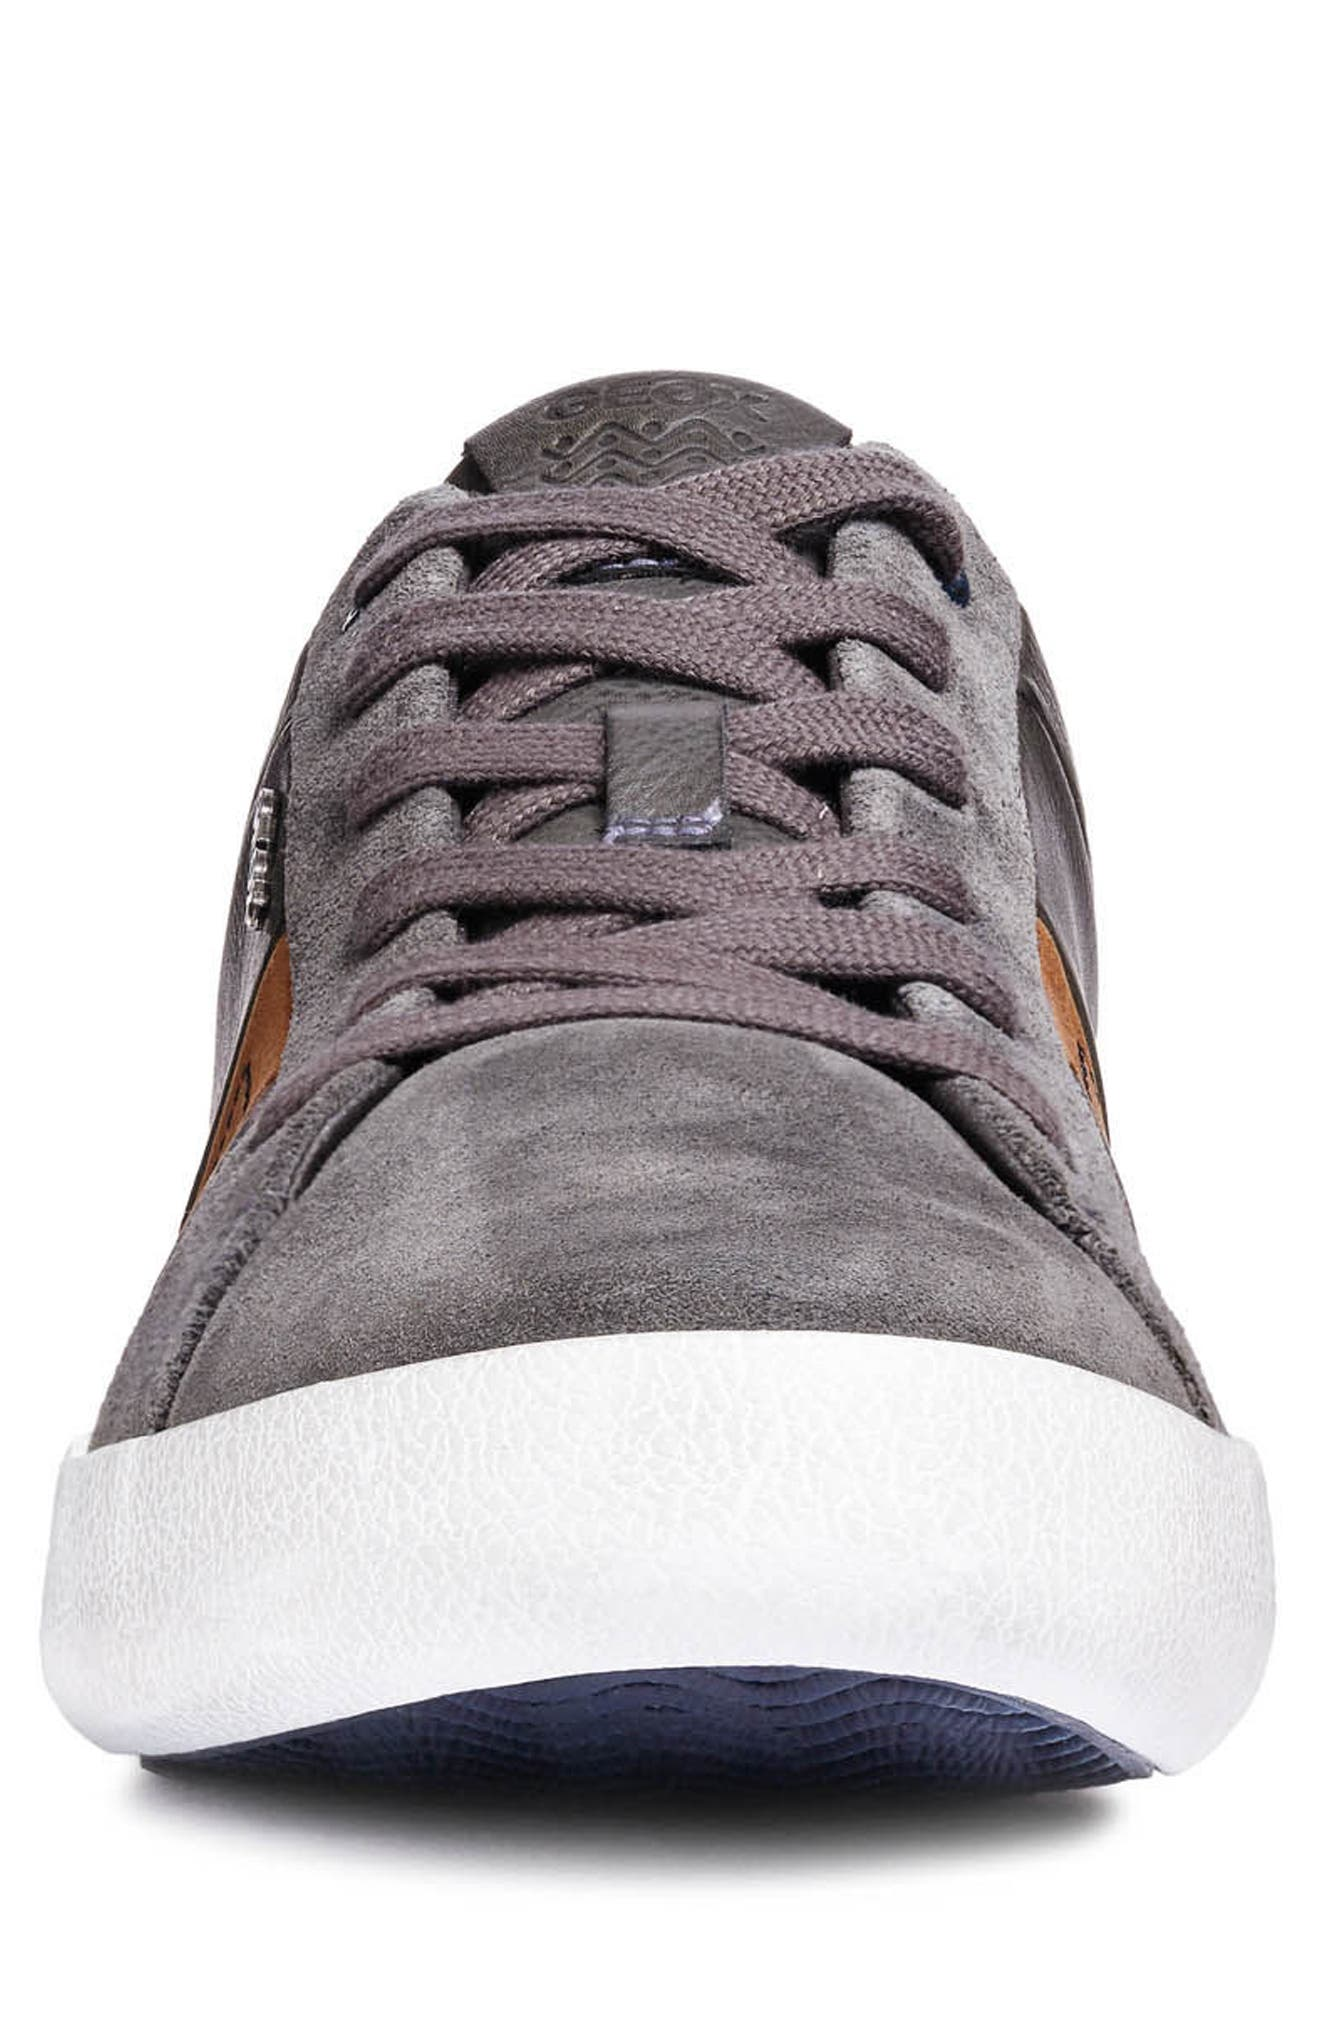 Box 40 Low Top Sneaker,                             Alternate thumbnail 4, color,                             ANTHRACITE LEATHER